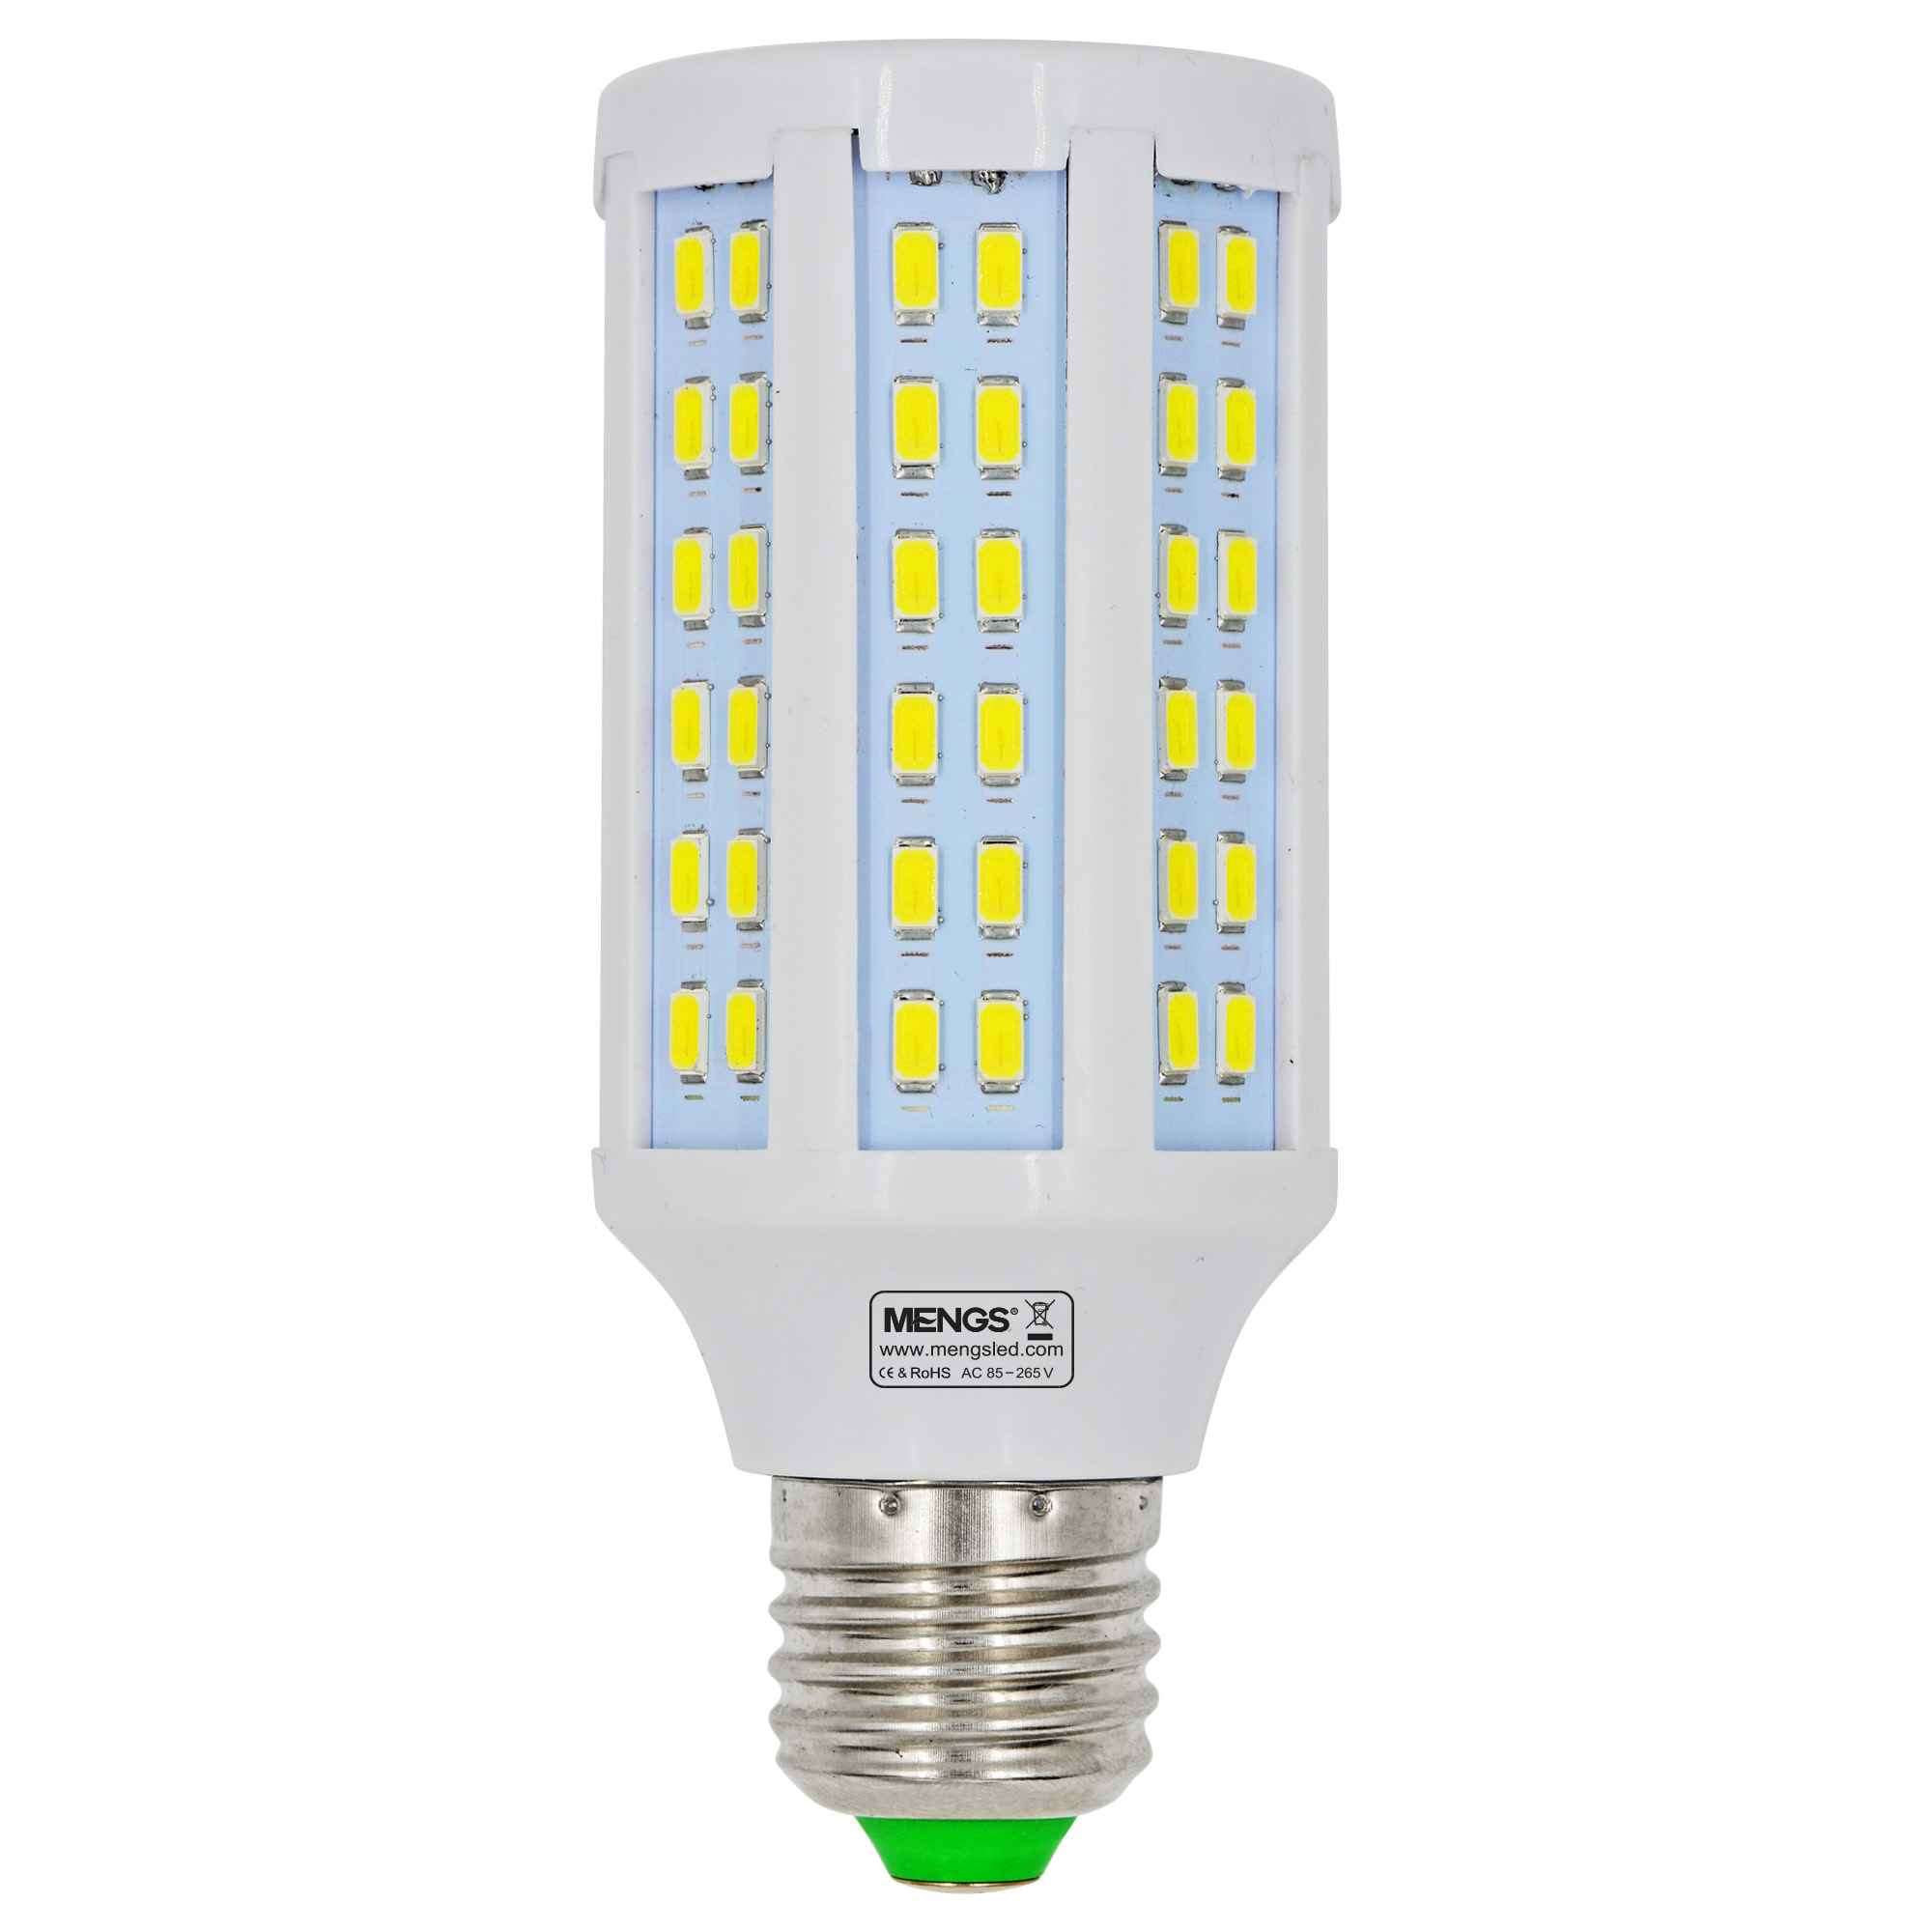 MENGS® E27 15W  LED Corn Light 120x 5730 SMD LED Bulb Lamp AC 85-265V in Cool White Energy-Saving Light